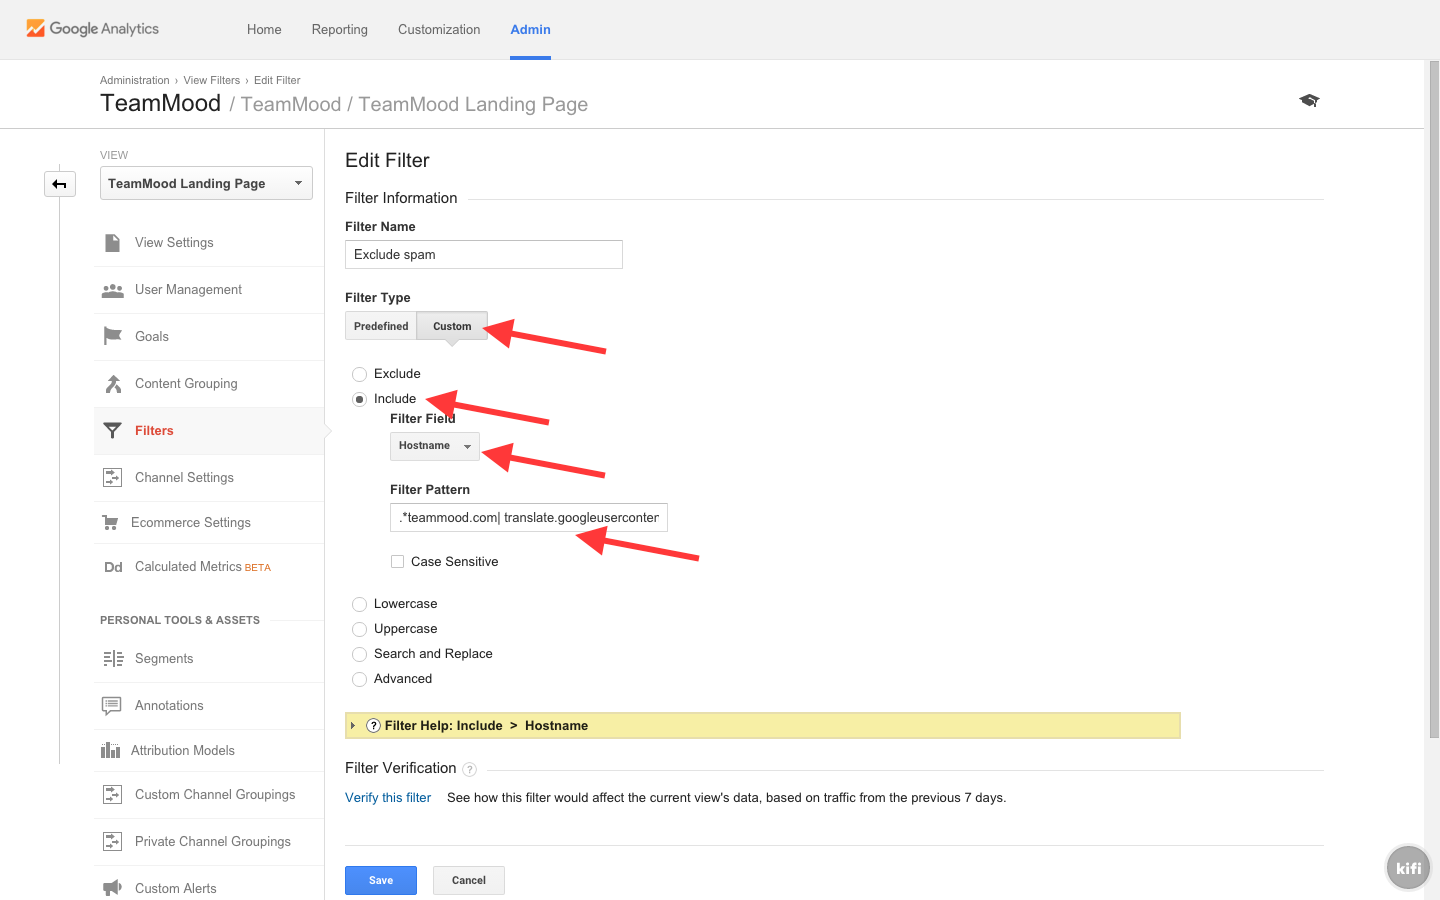 Remove Spam in Google Analytics